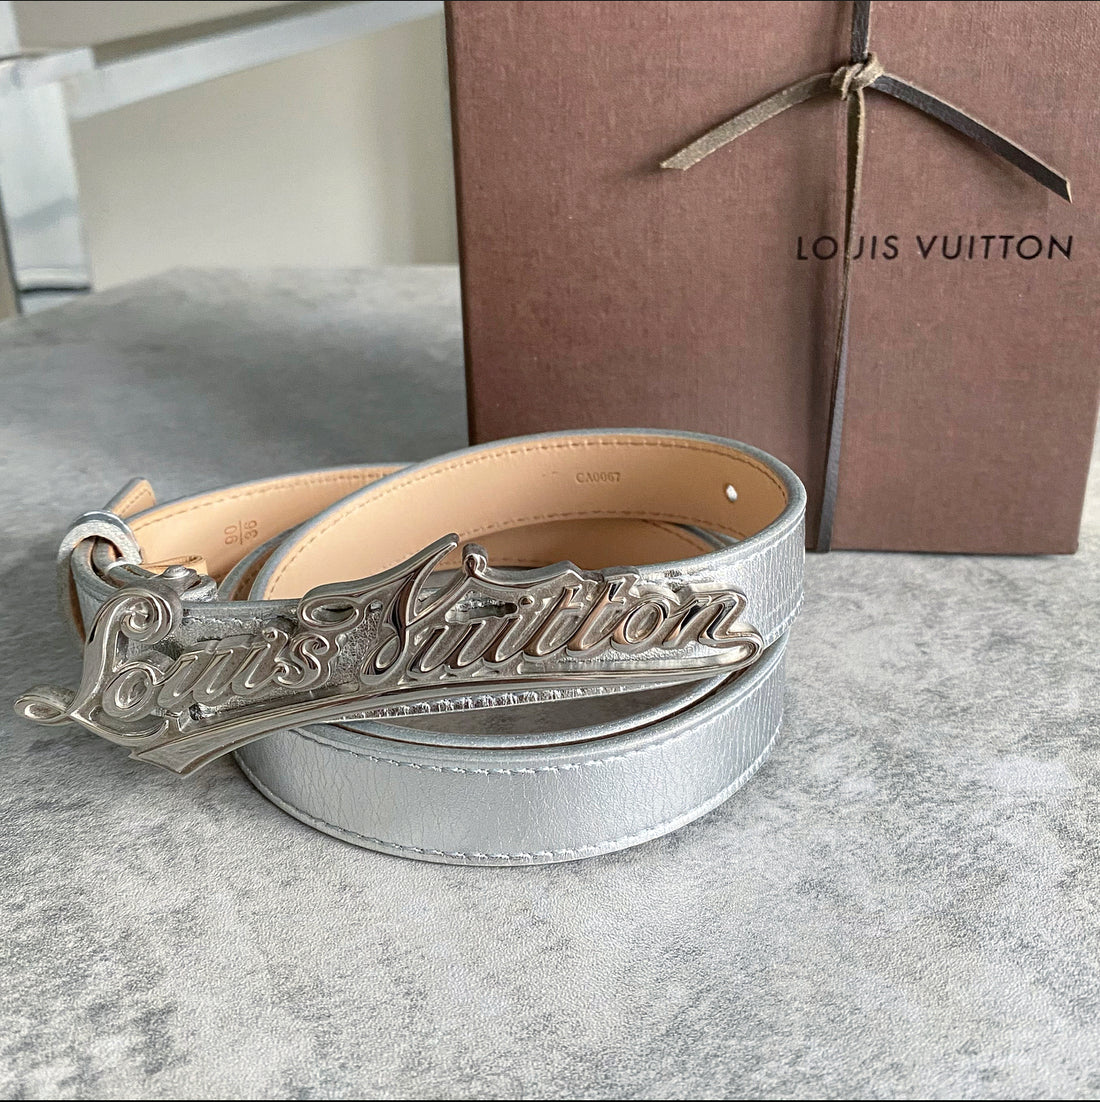 Louis Vuitton Silver Cursive Logo Buckle Belt - 90 / 36